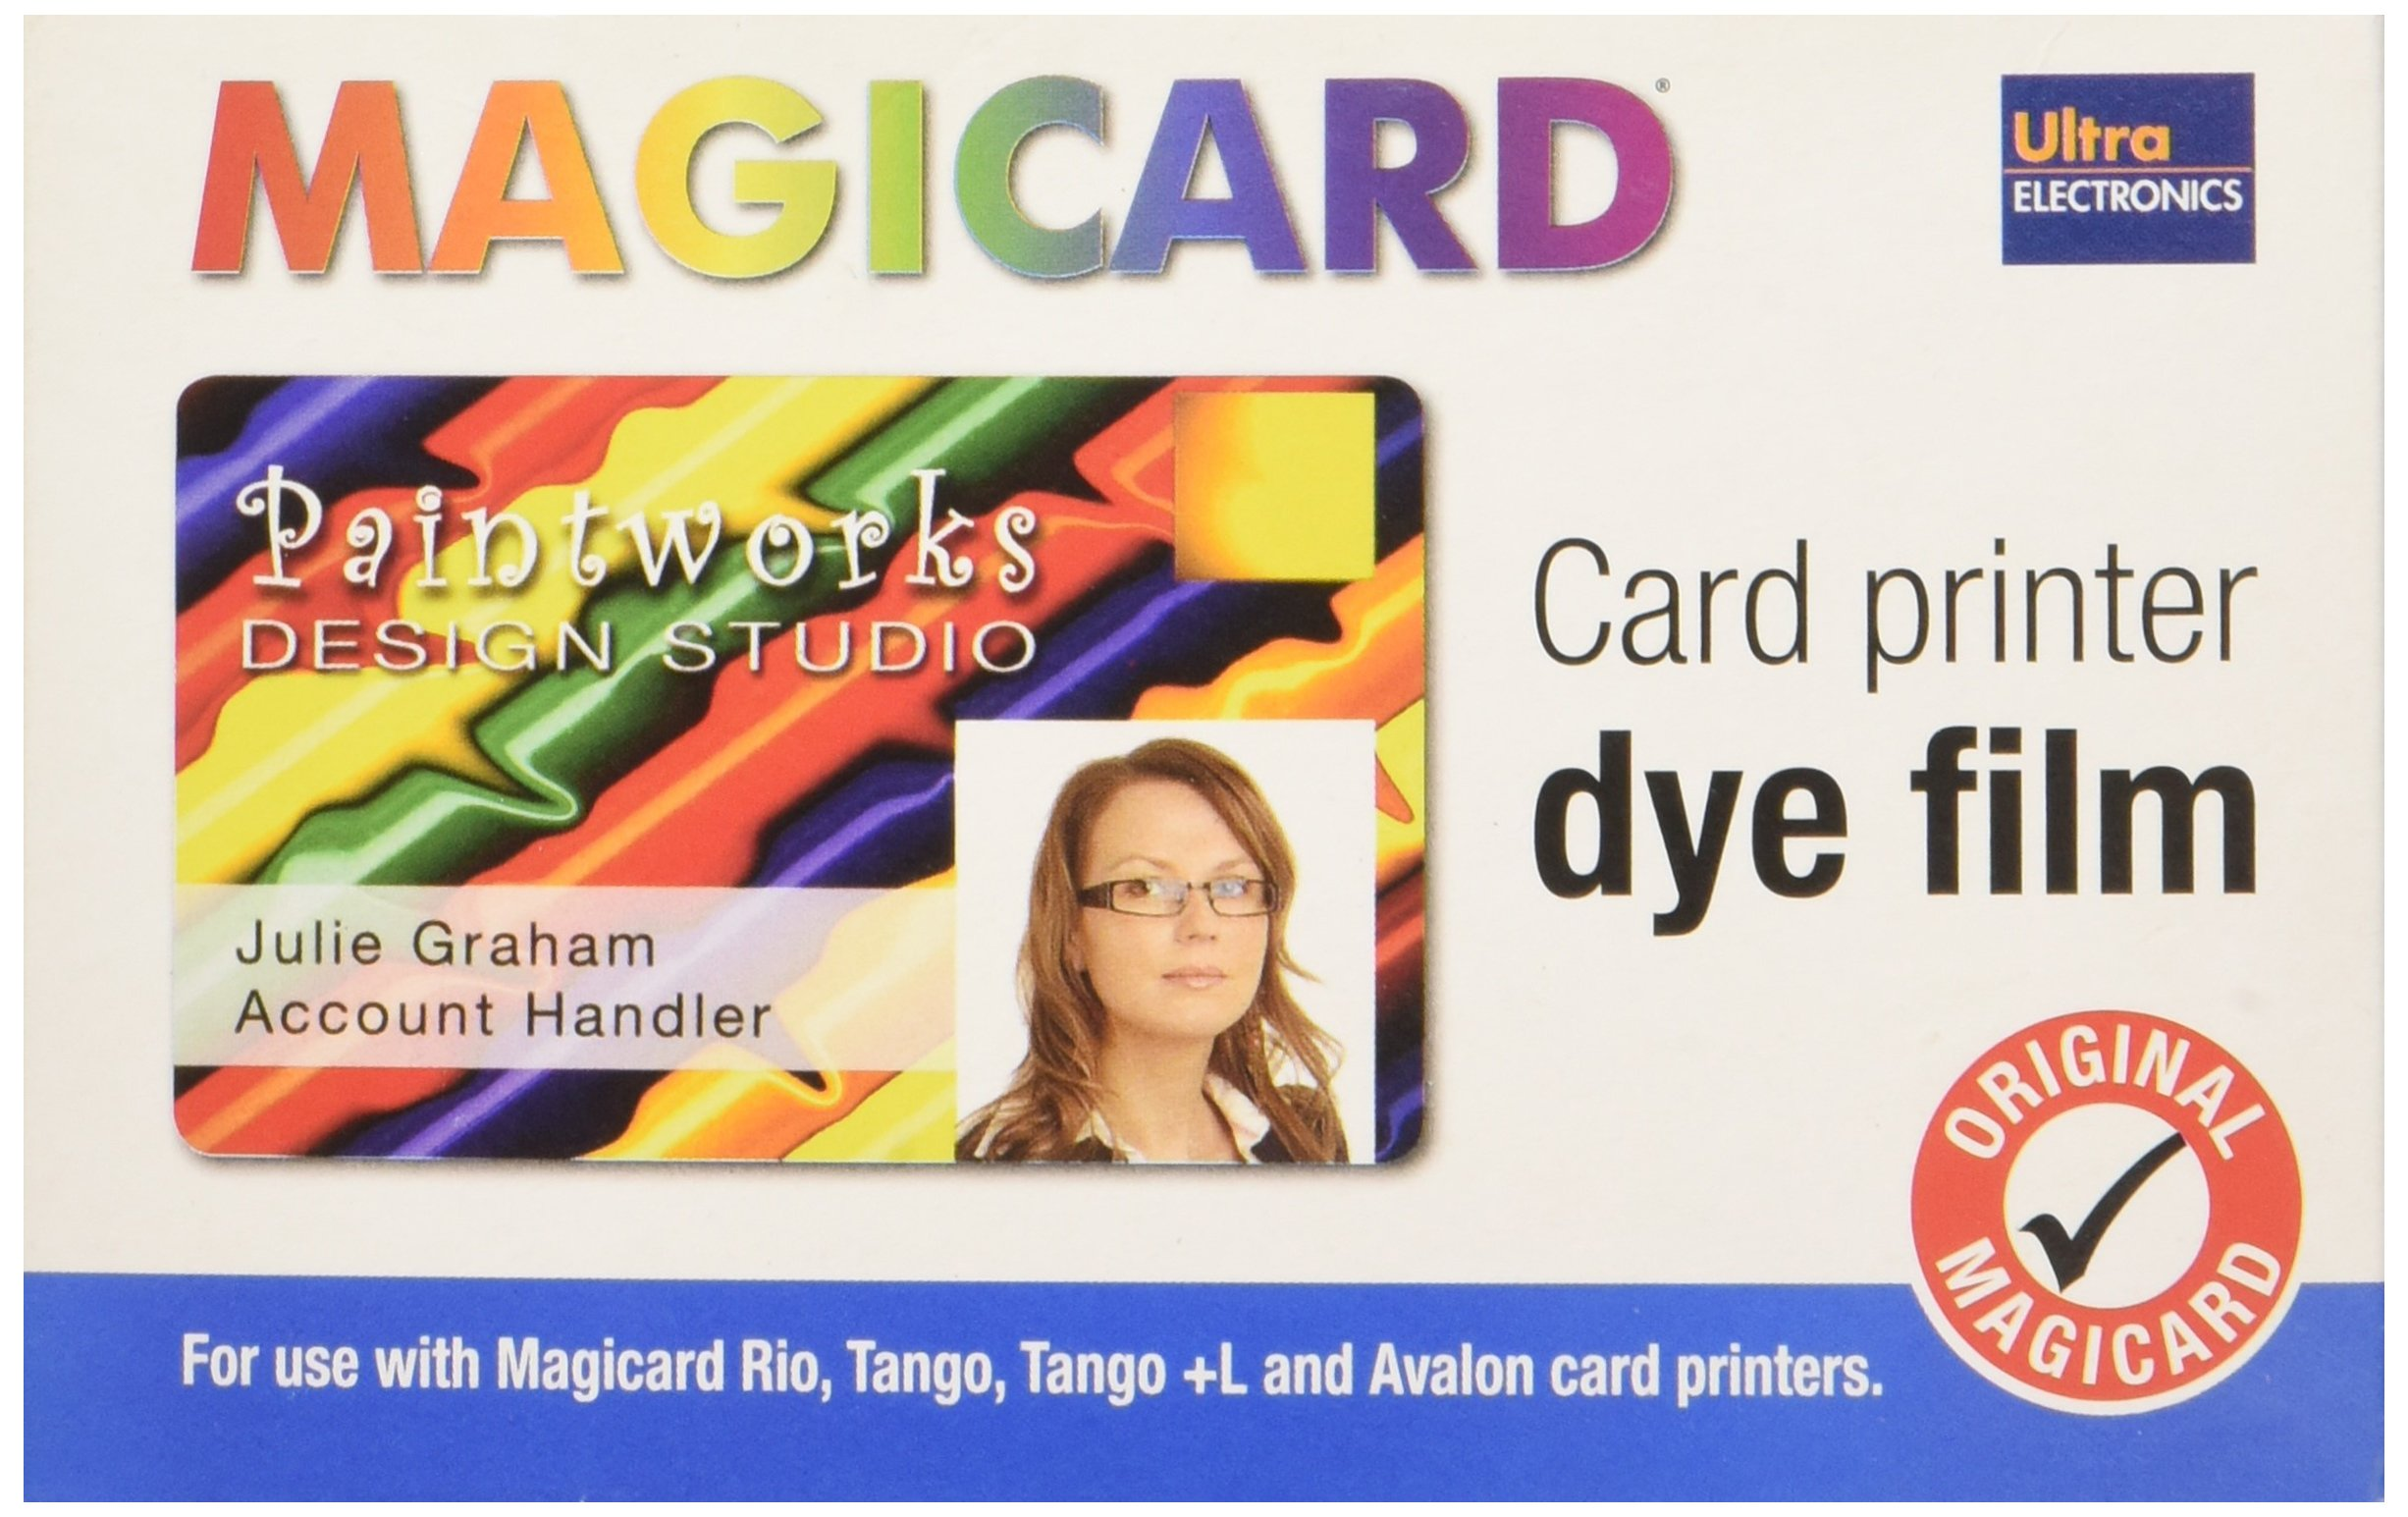 Digital Imaging Consumable, Magicard M9005-751 5 Panel Color Dye FILM-350 Images by Logitech (Image #2)